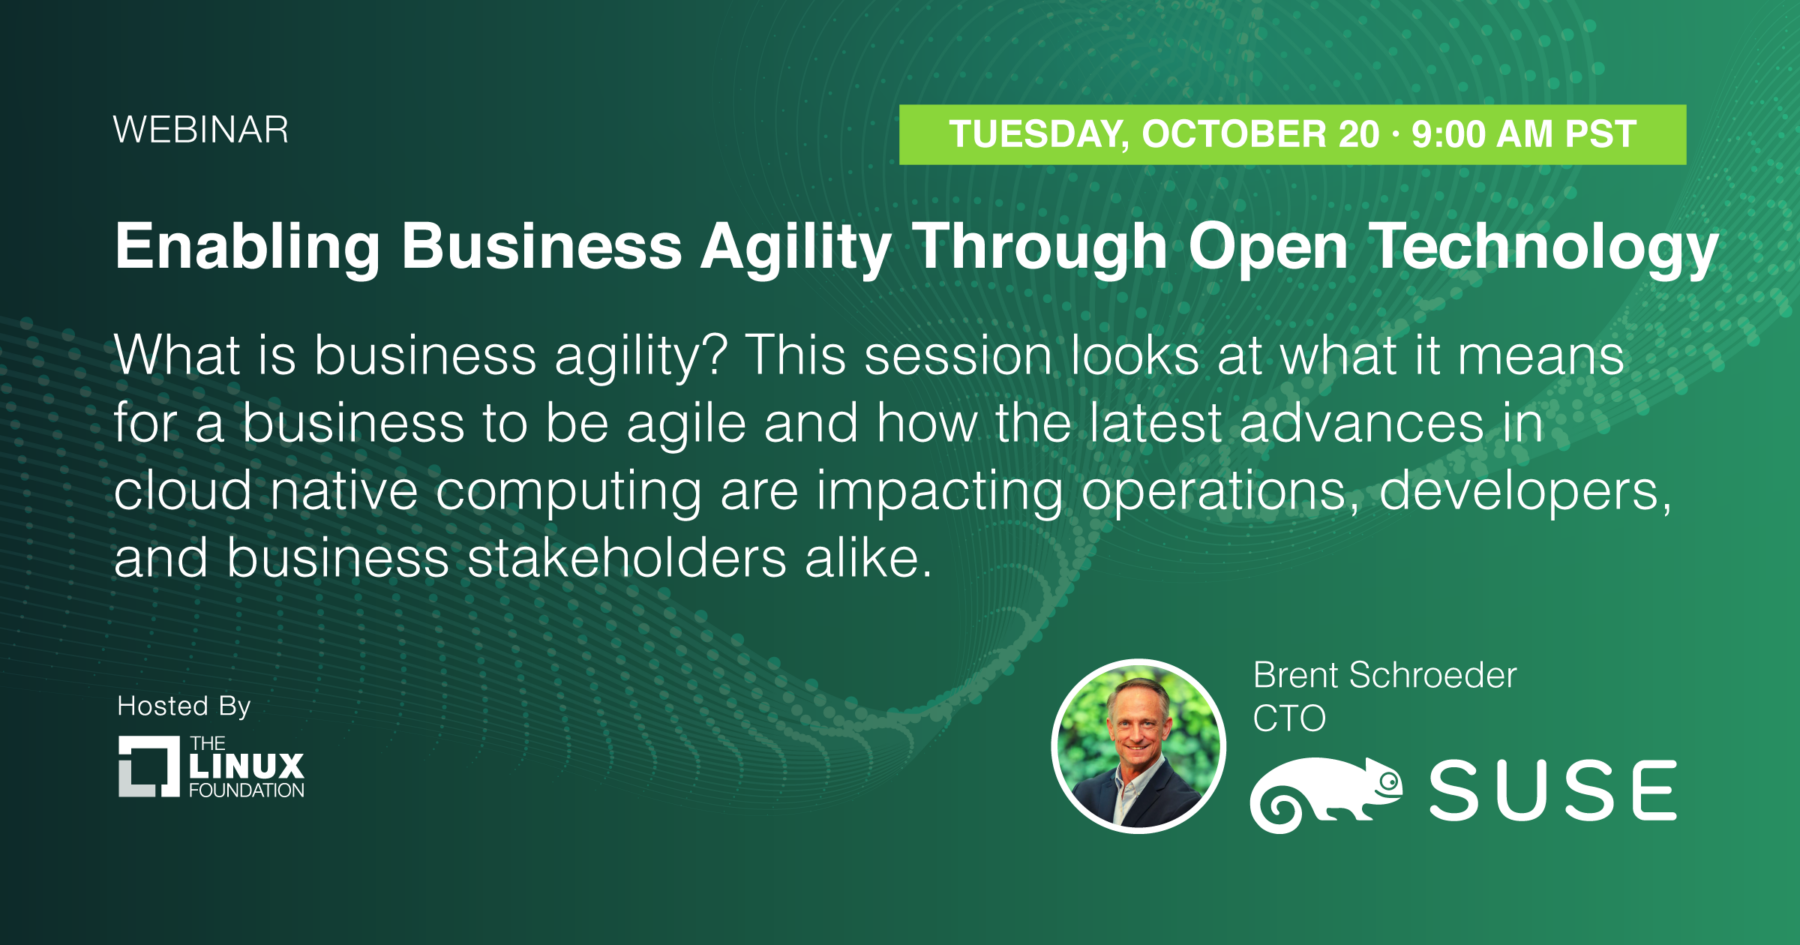 Webinar - Enabling Business Agility Through Open Technology